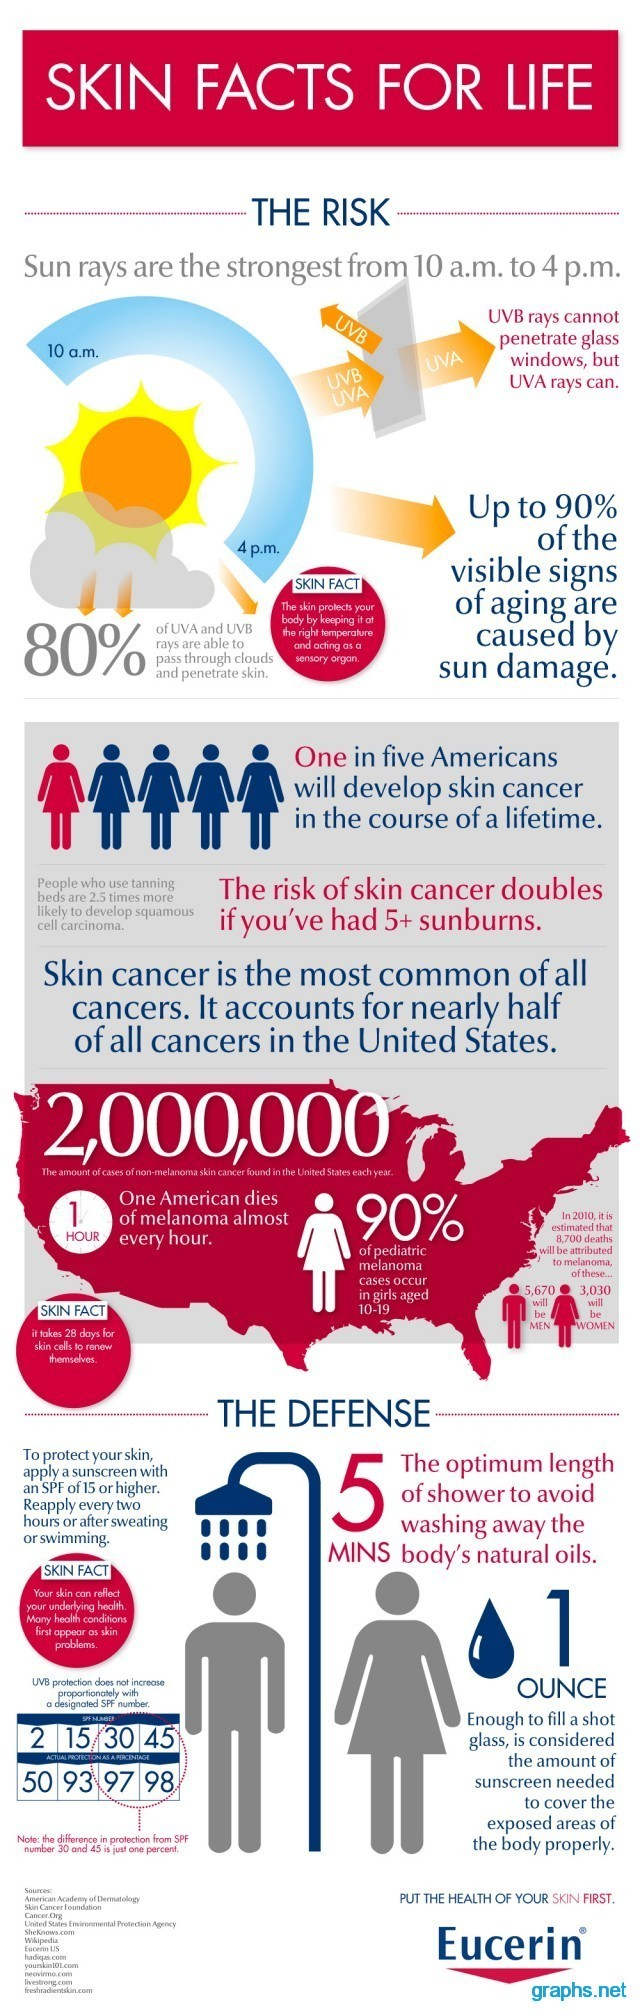 Facts About the Sun and Skin Cancer